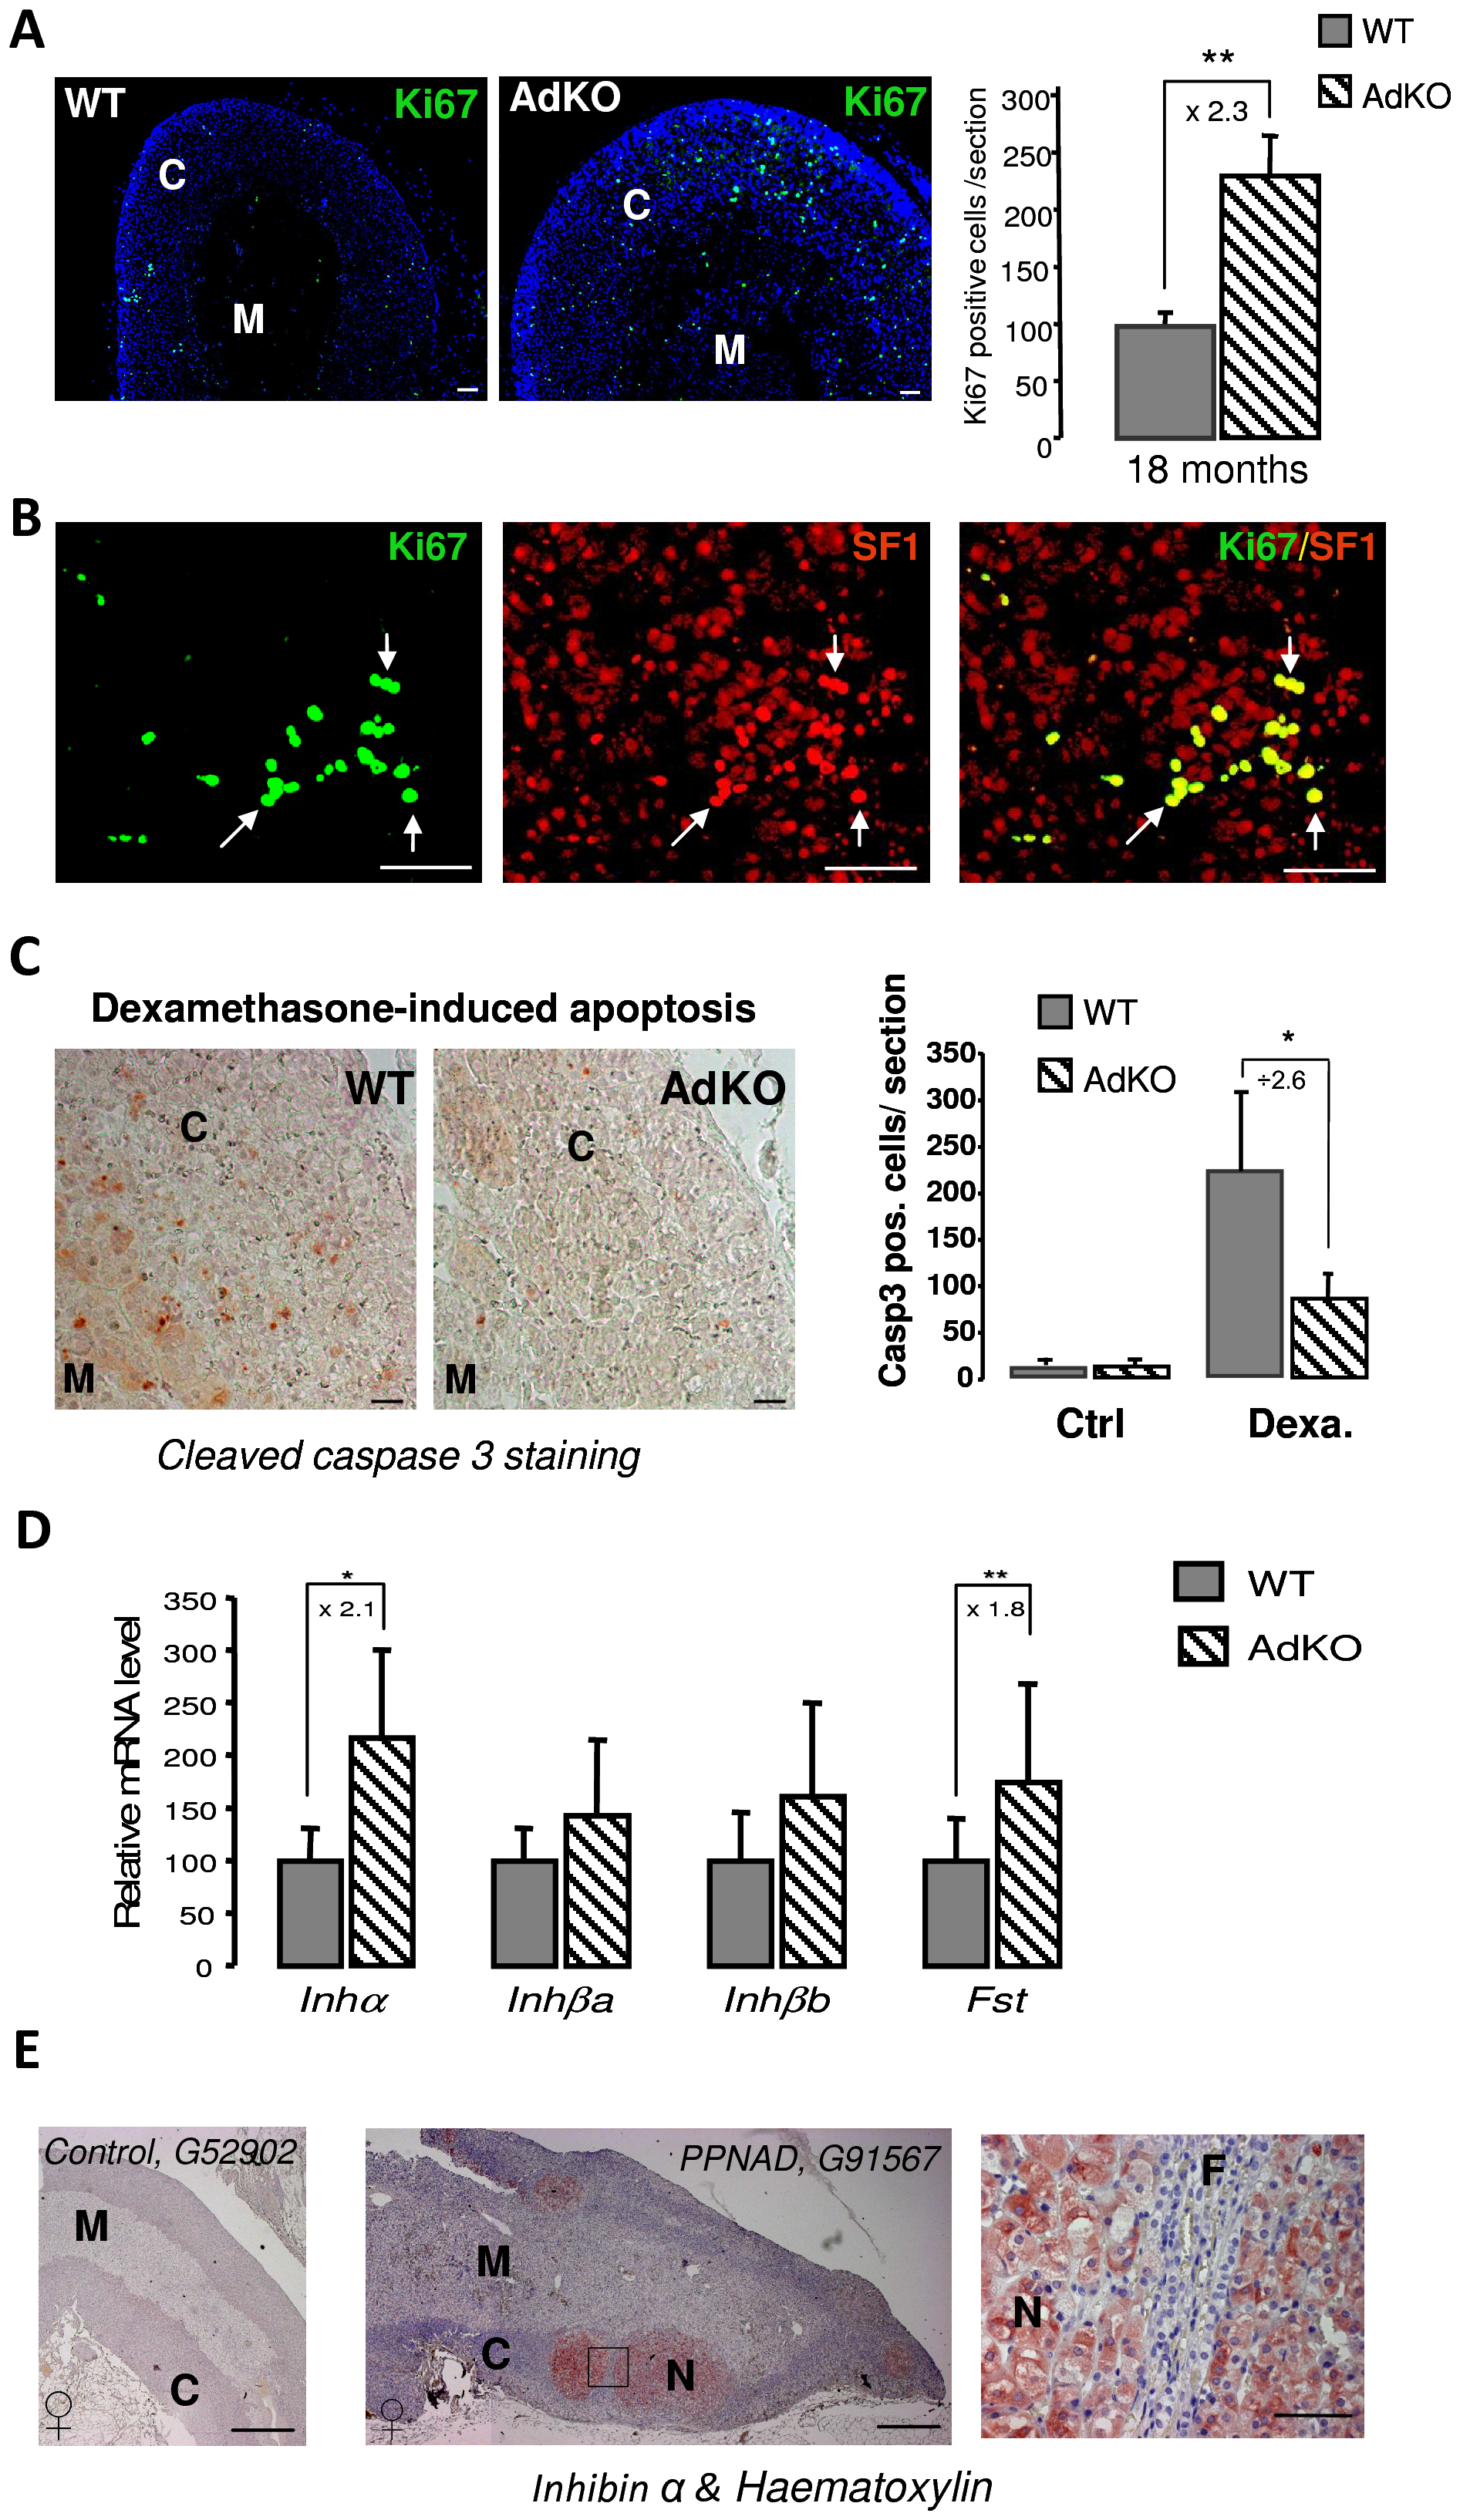 Proliferation and resistance to apoptosis in AdKO adrenals, inhibin-activin system in AdKO adrenals, and PPNAD.